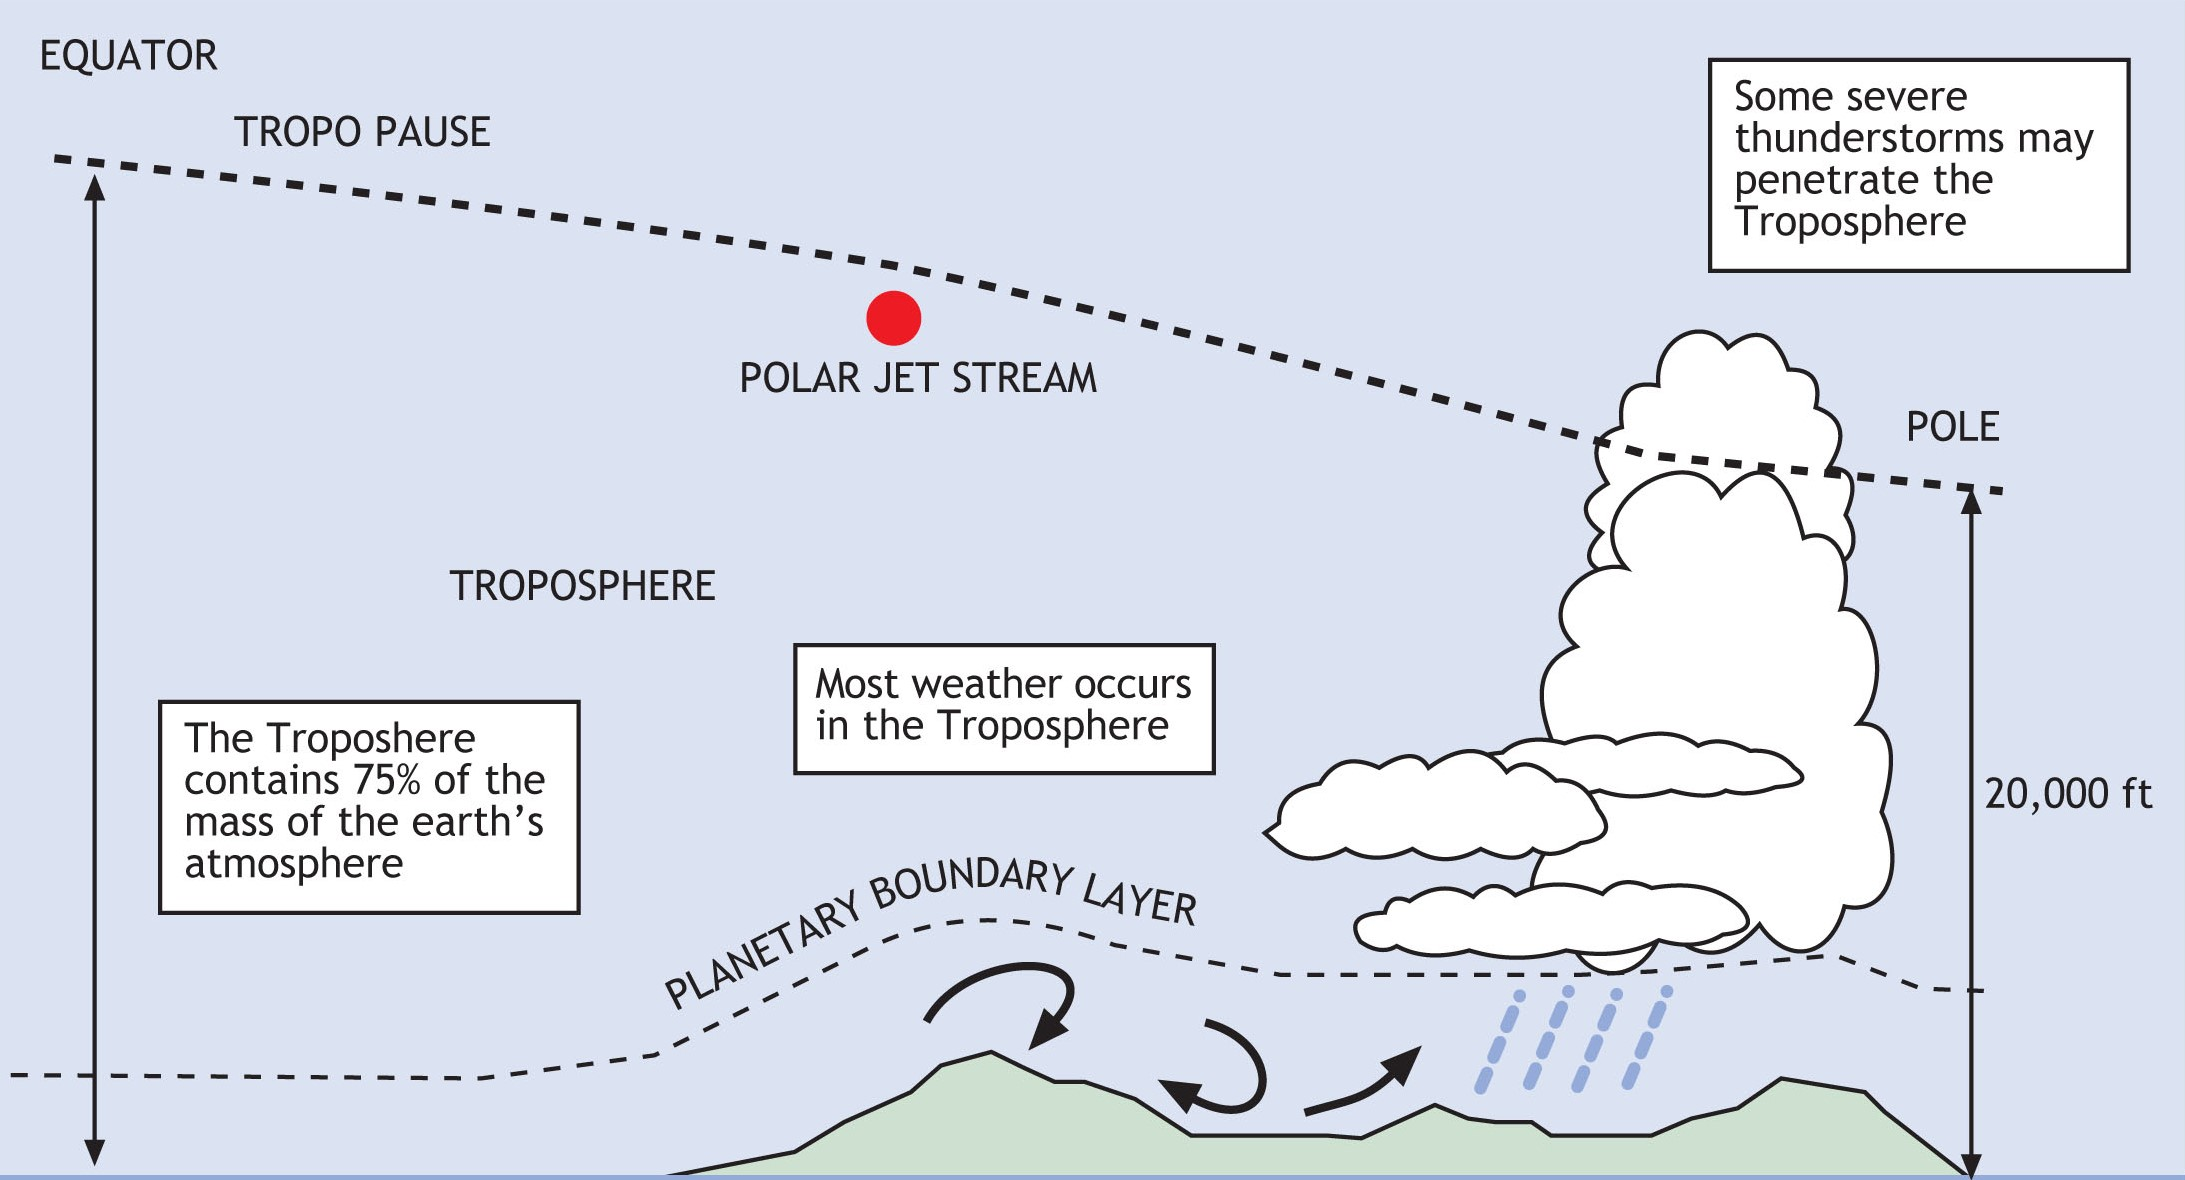 Radar Better than Weather Balloons for Measuring Low Levels of Atmosphere